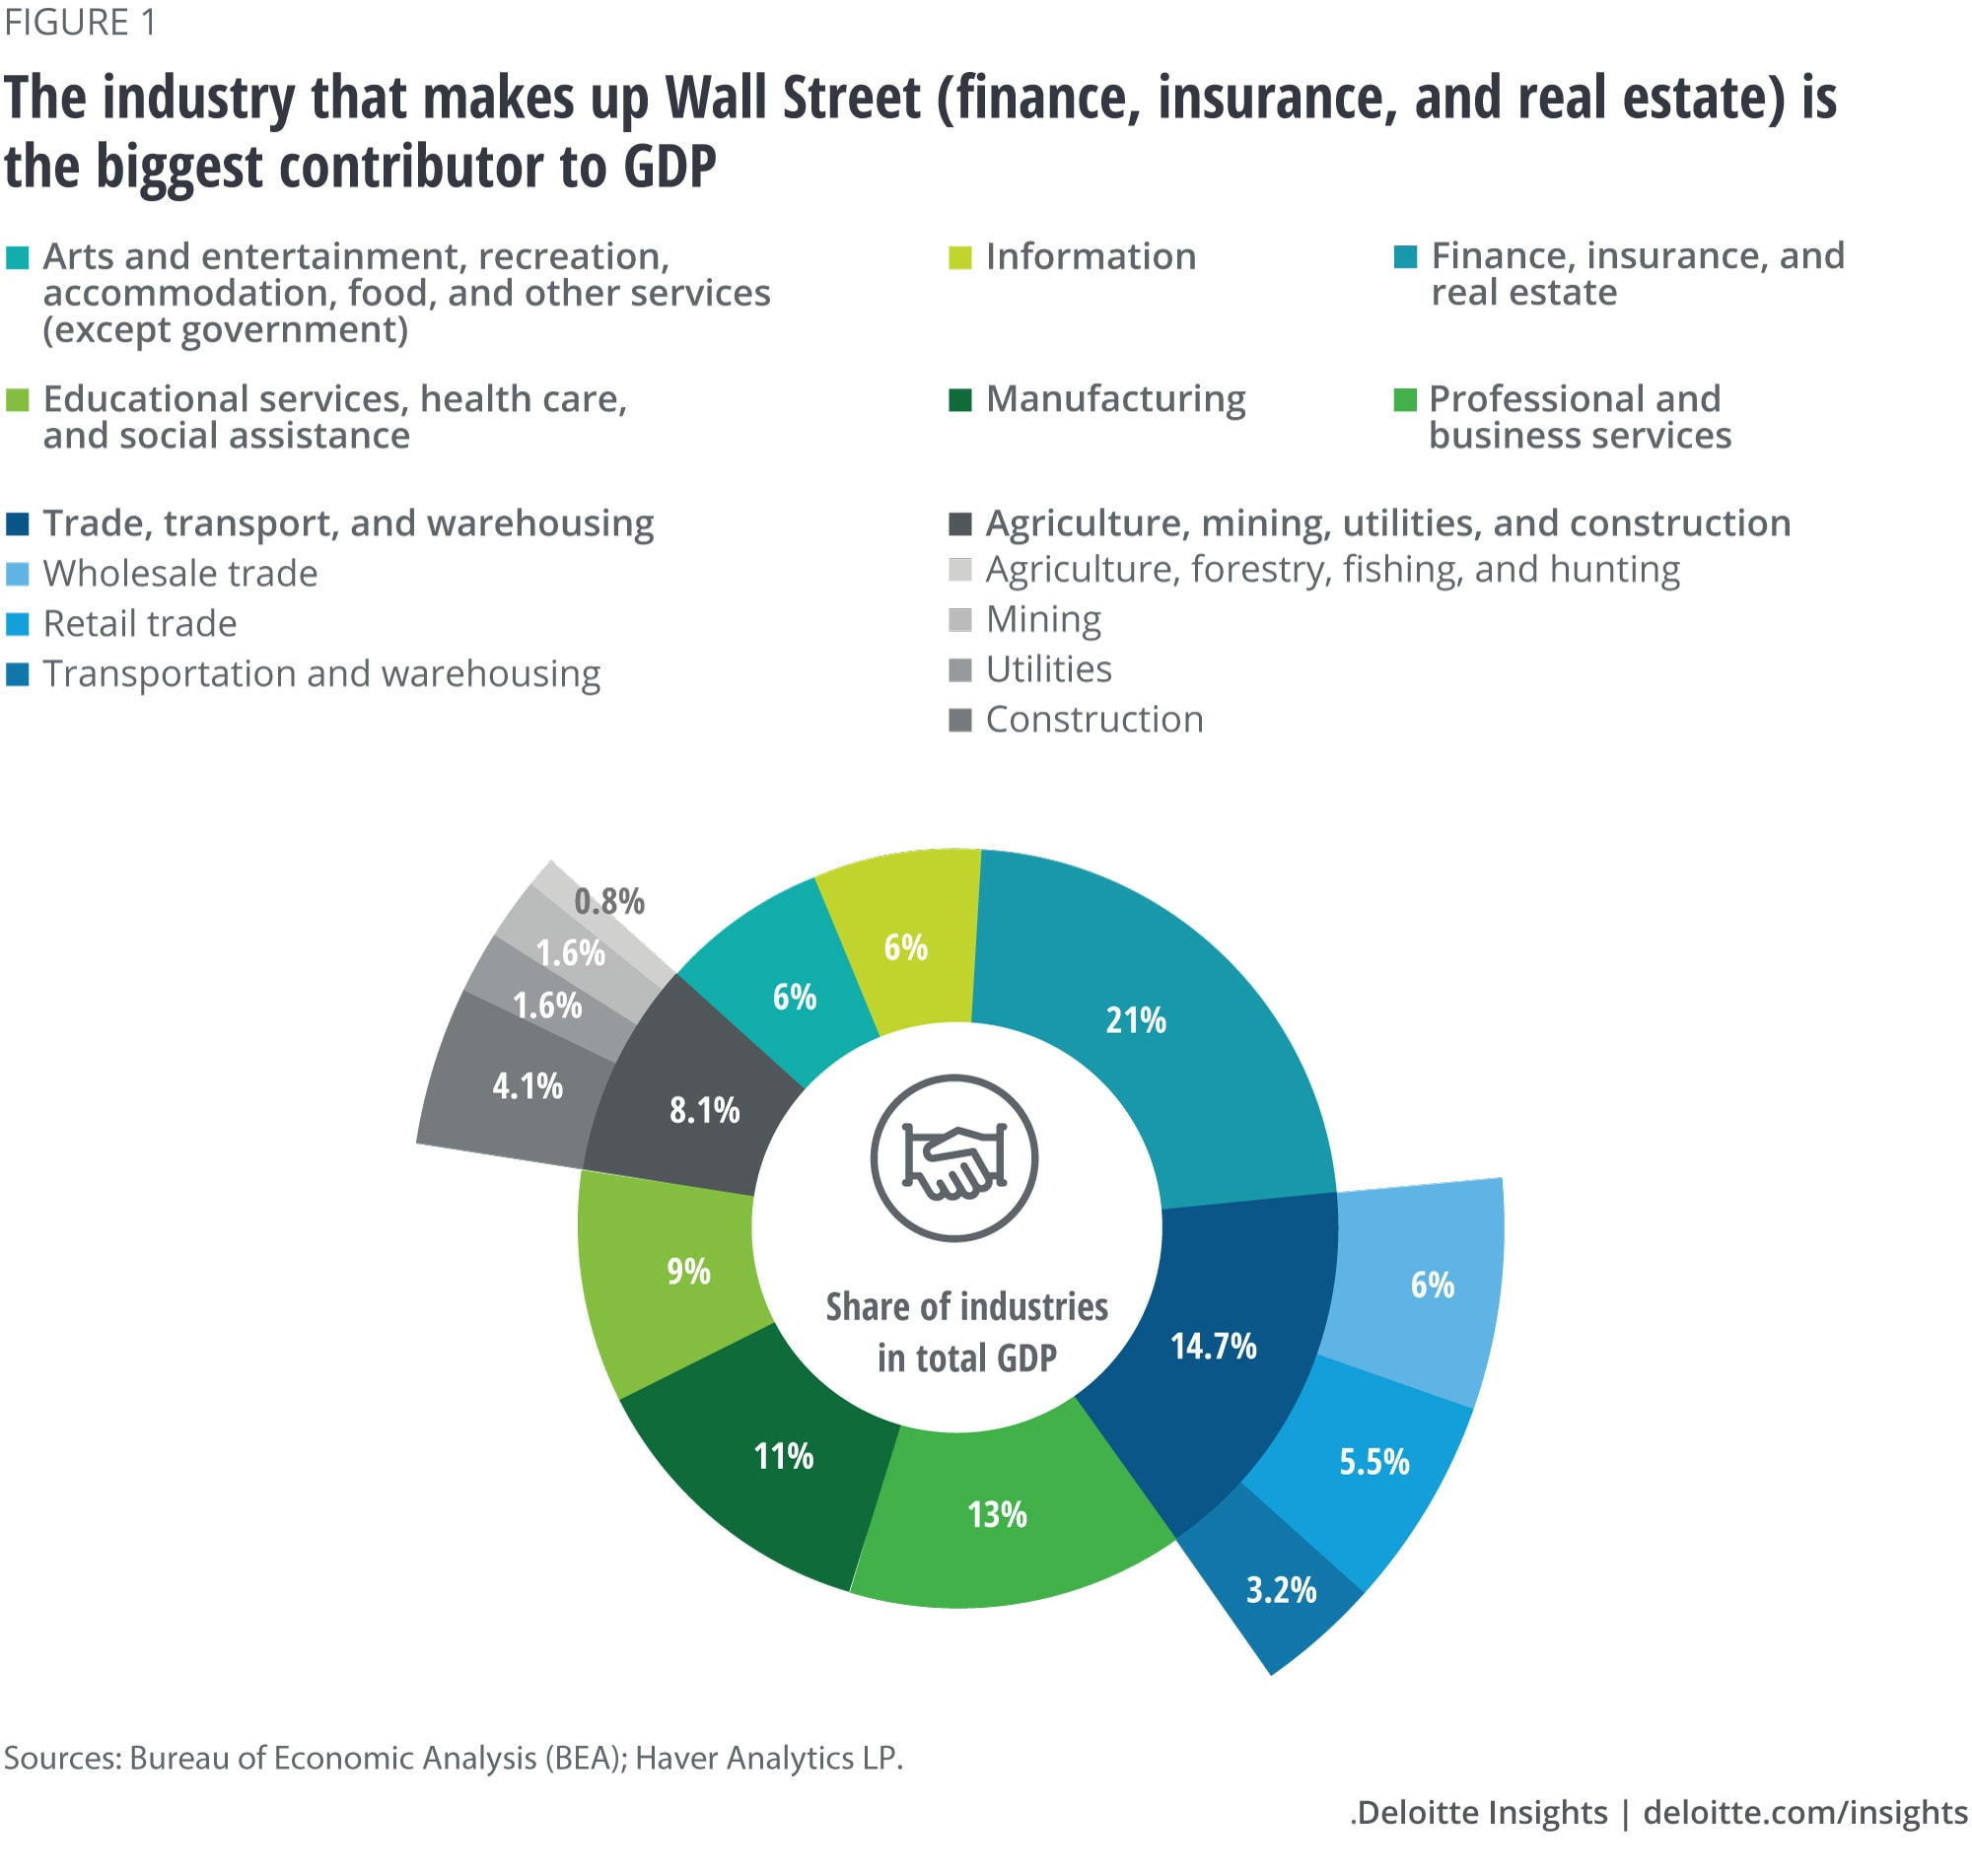 The industry that makes up Wall Street (finance, insurance, and real estate) is the biggest contributor to GDP